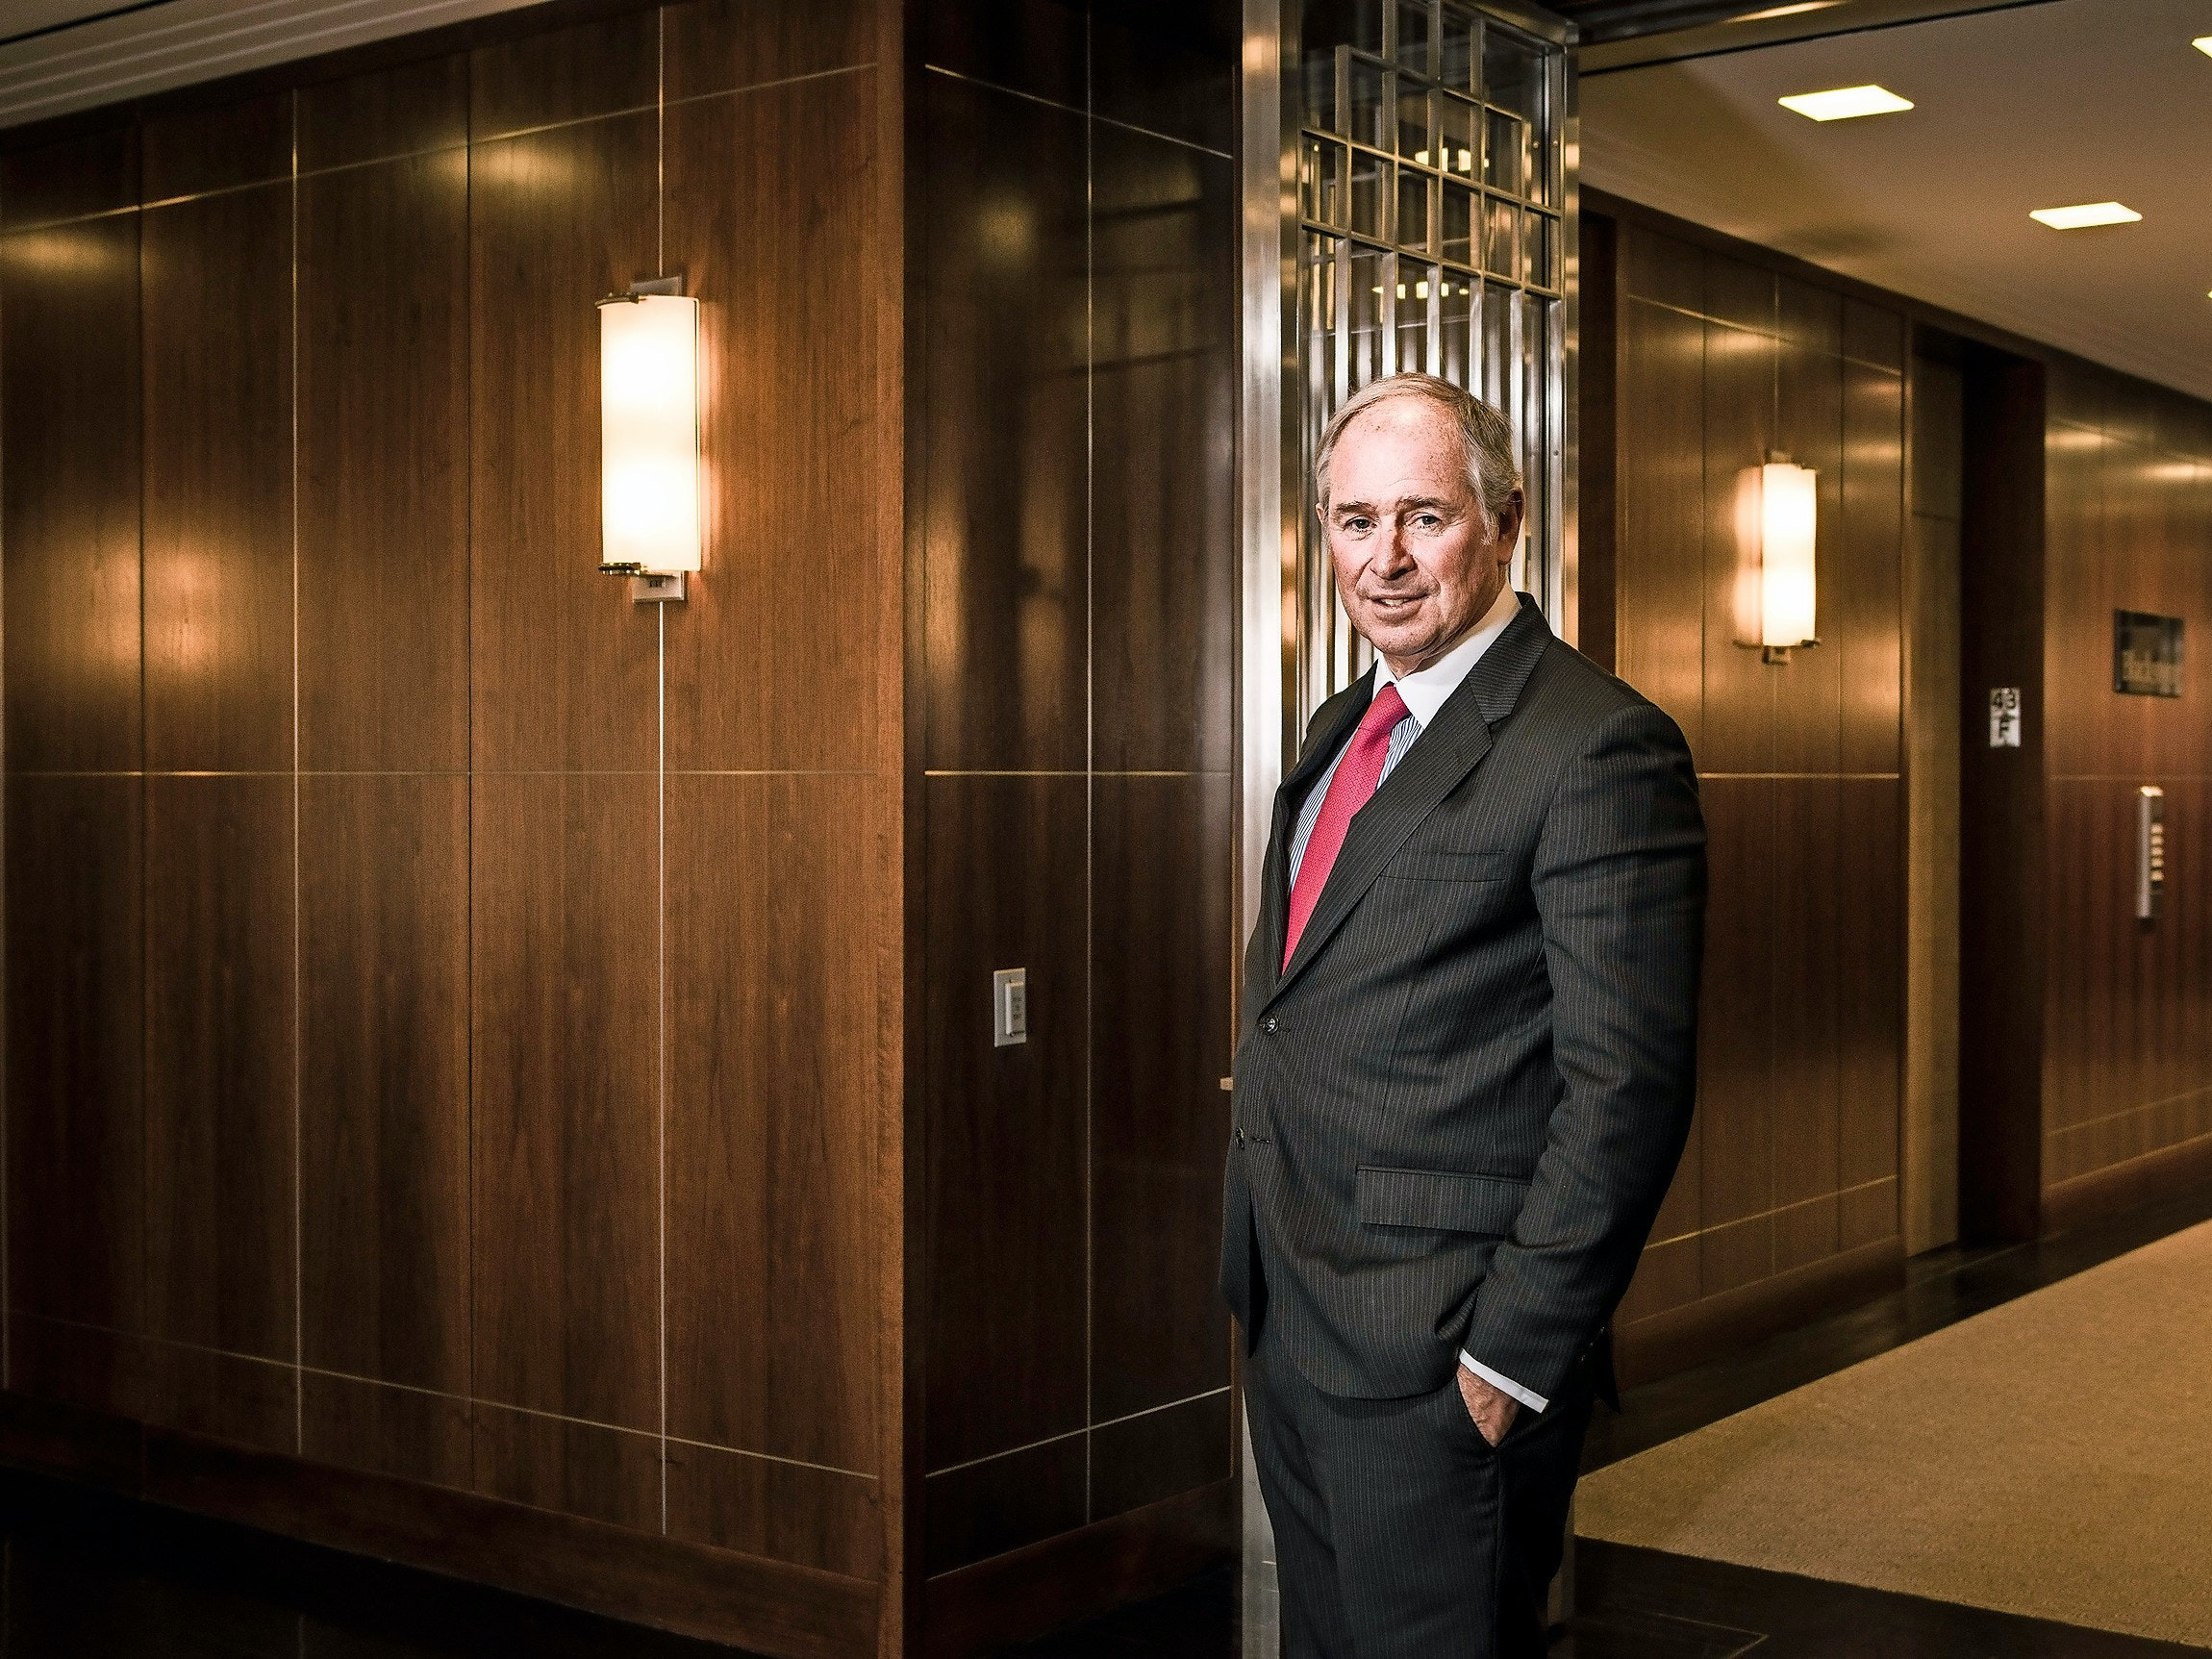 Blackstone Group's chief executive Stephen Schwarzman at the Blackstone offices in New York, Jan. 7, 2016. The long-running campaign by Schwarzman to get investors to pile into his stock was hurt on Jan. 28 when Blackstone reported a 70 percent decline in its core income for the fourth quarter. (Sasha Maslov/The New York Times)